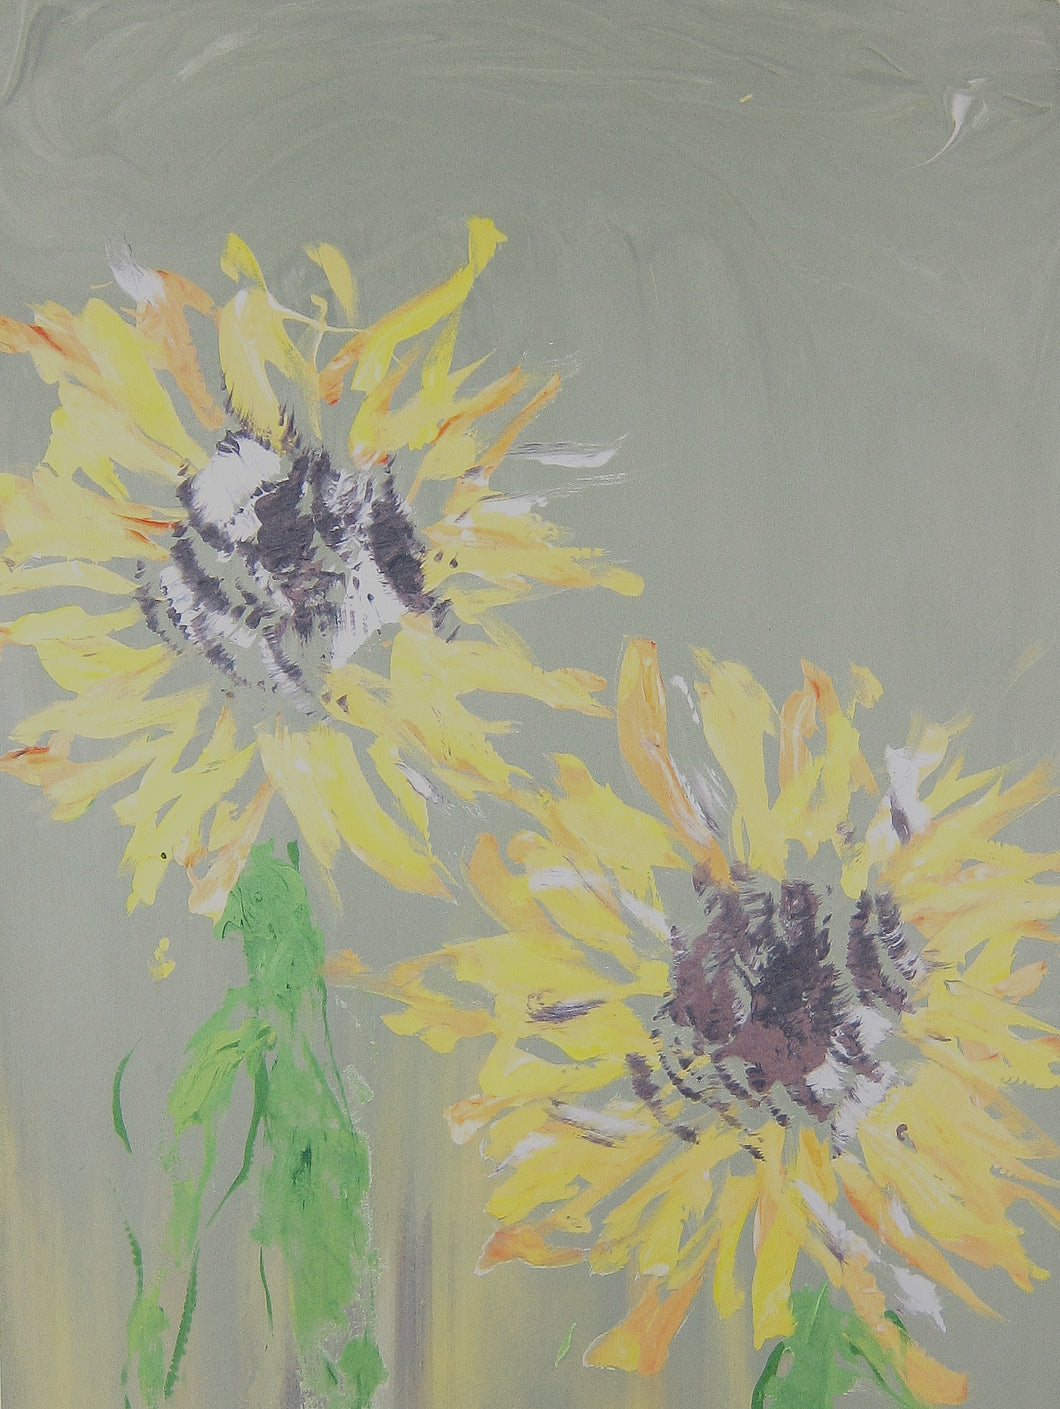 Super Bloom 102 (Sunflowers in the City mist)